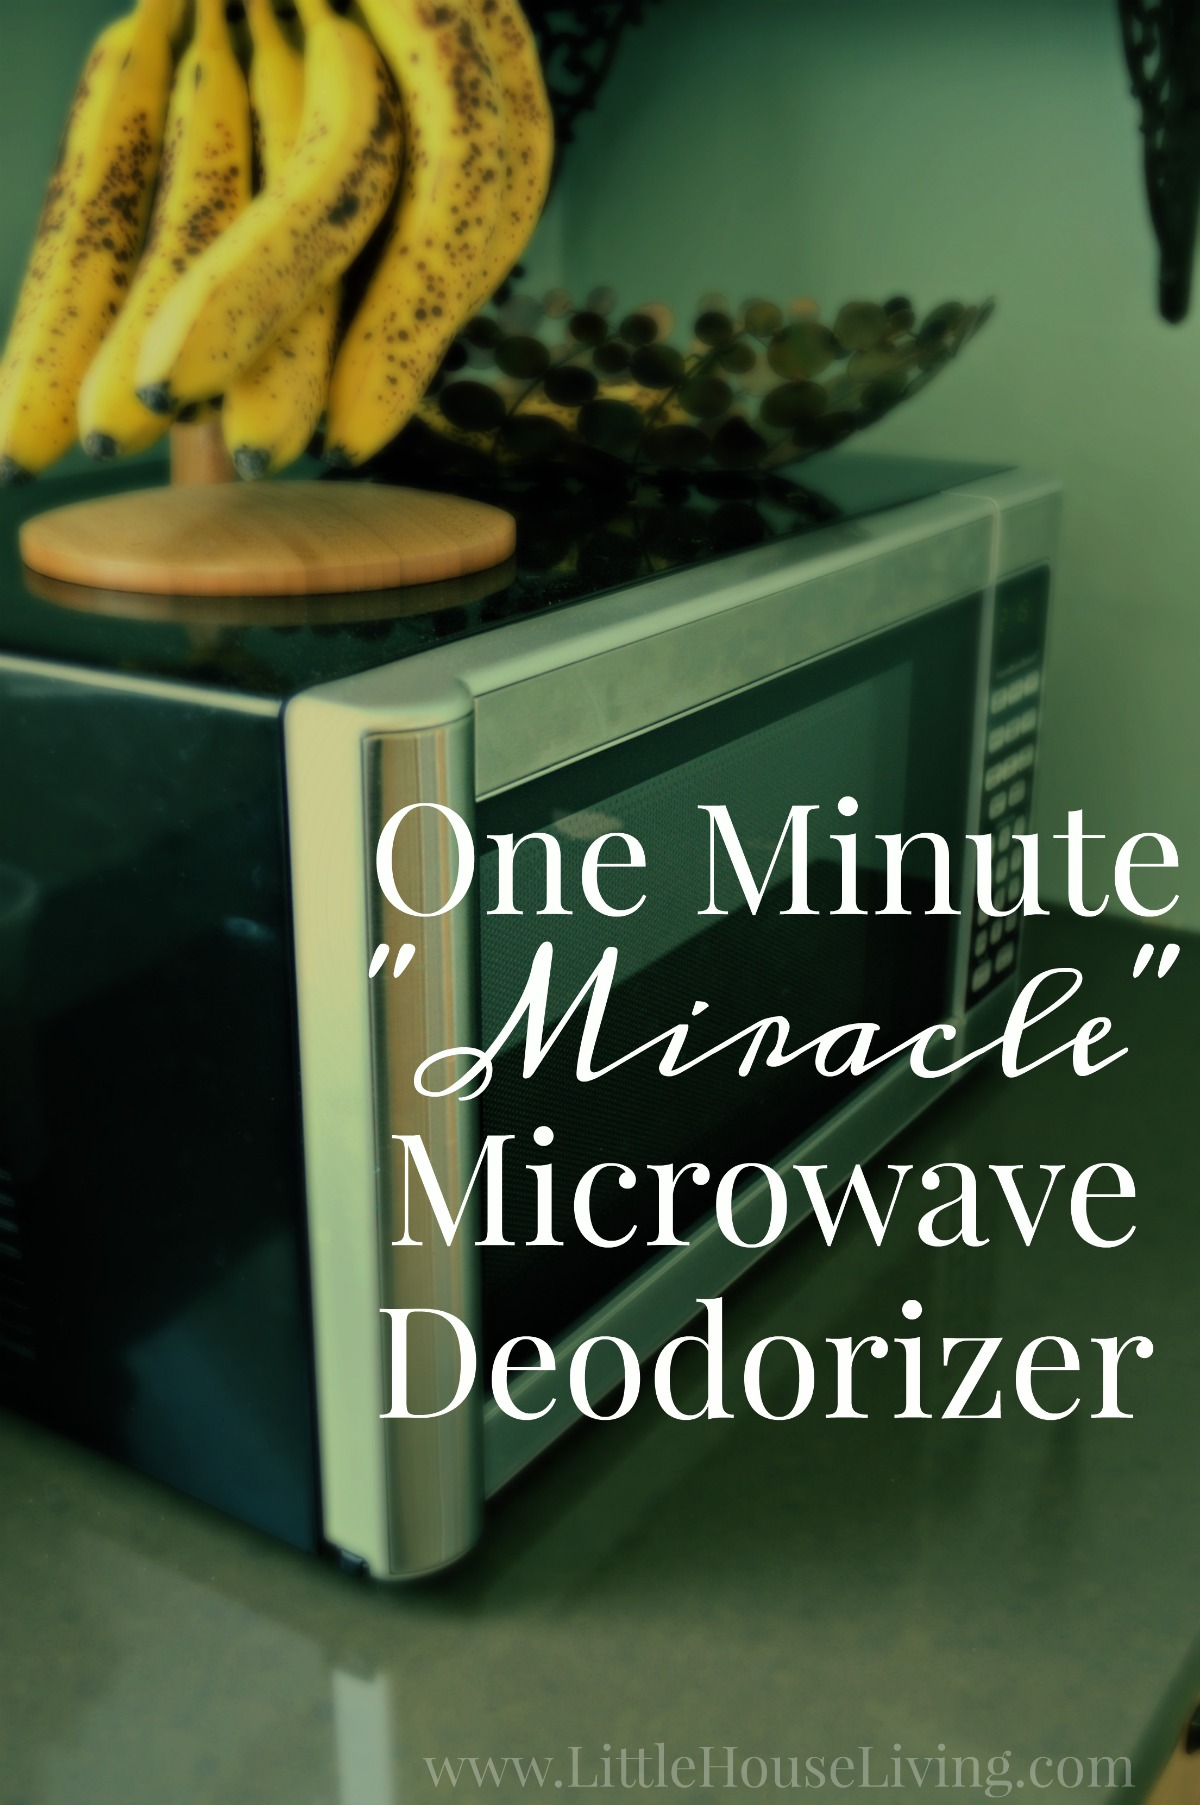 One Ing Miracle Microwave Deodorizer